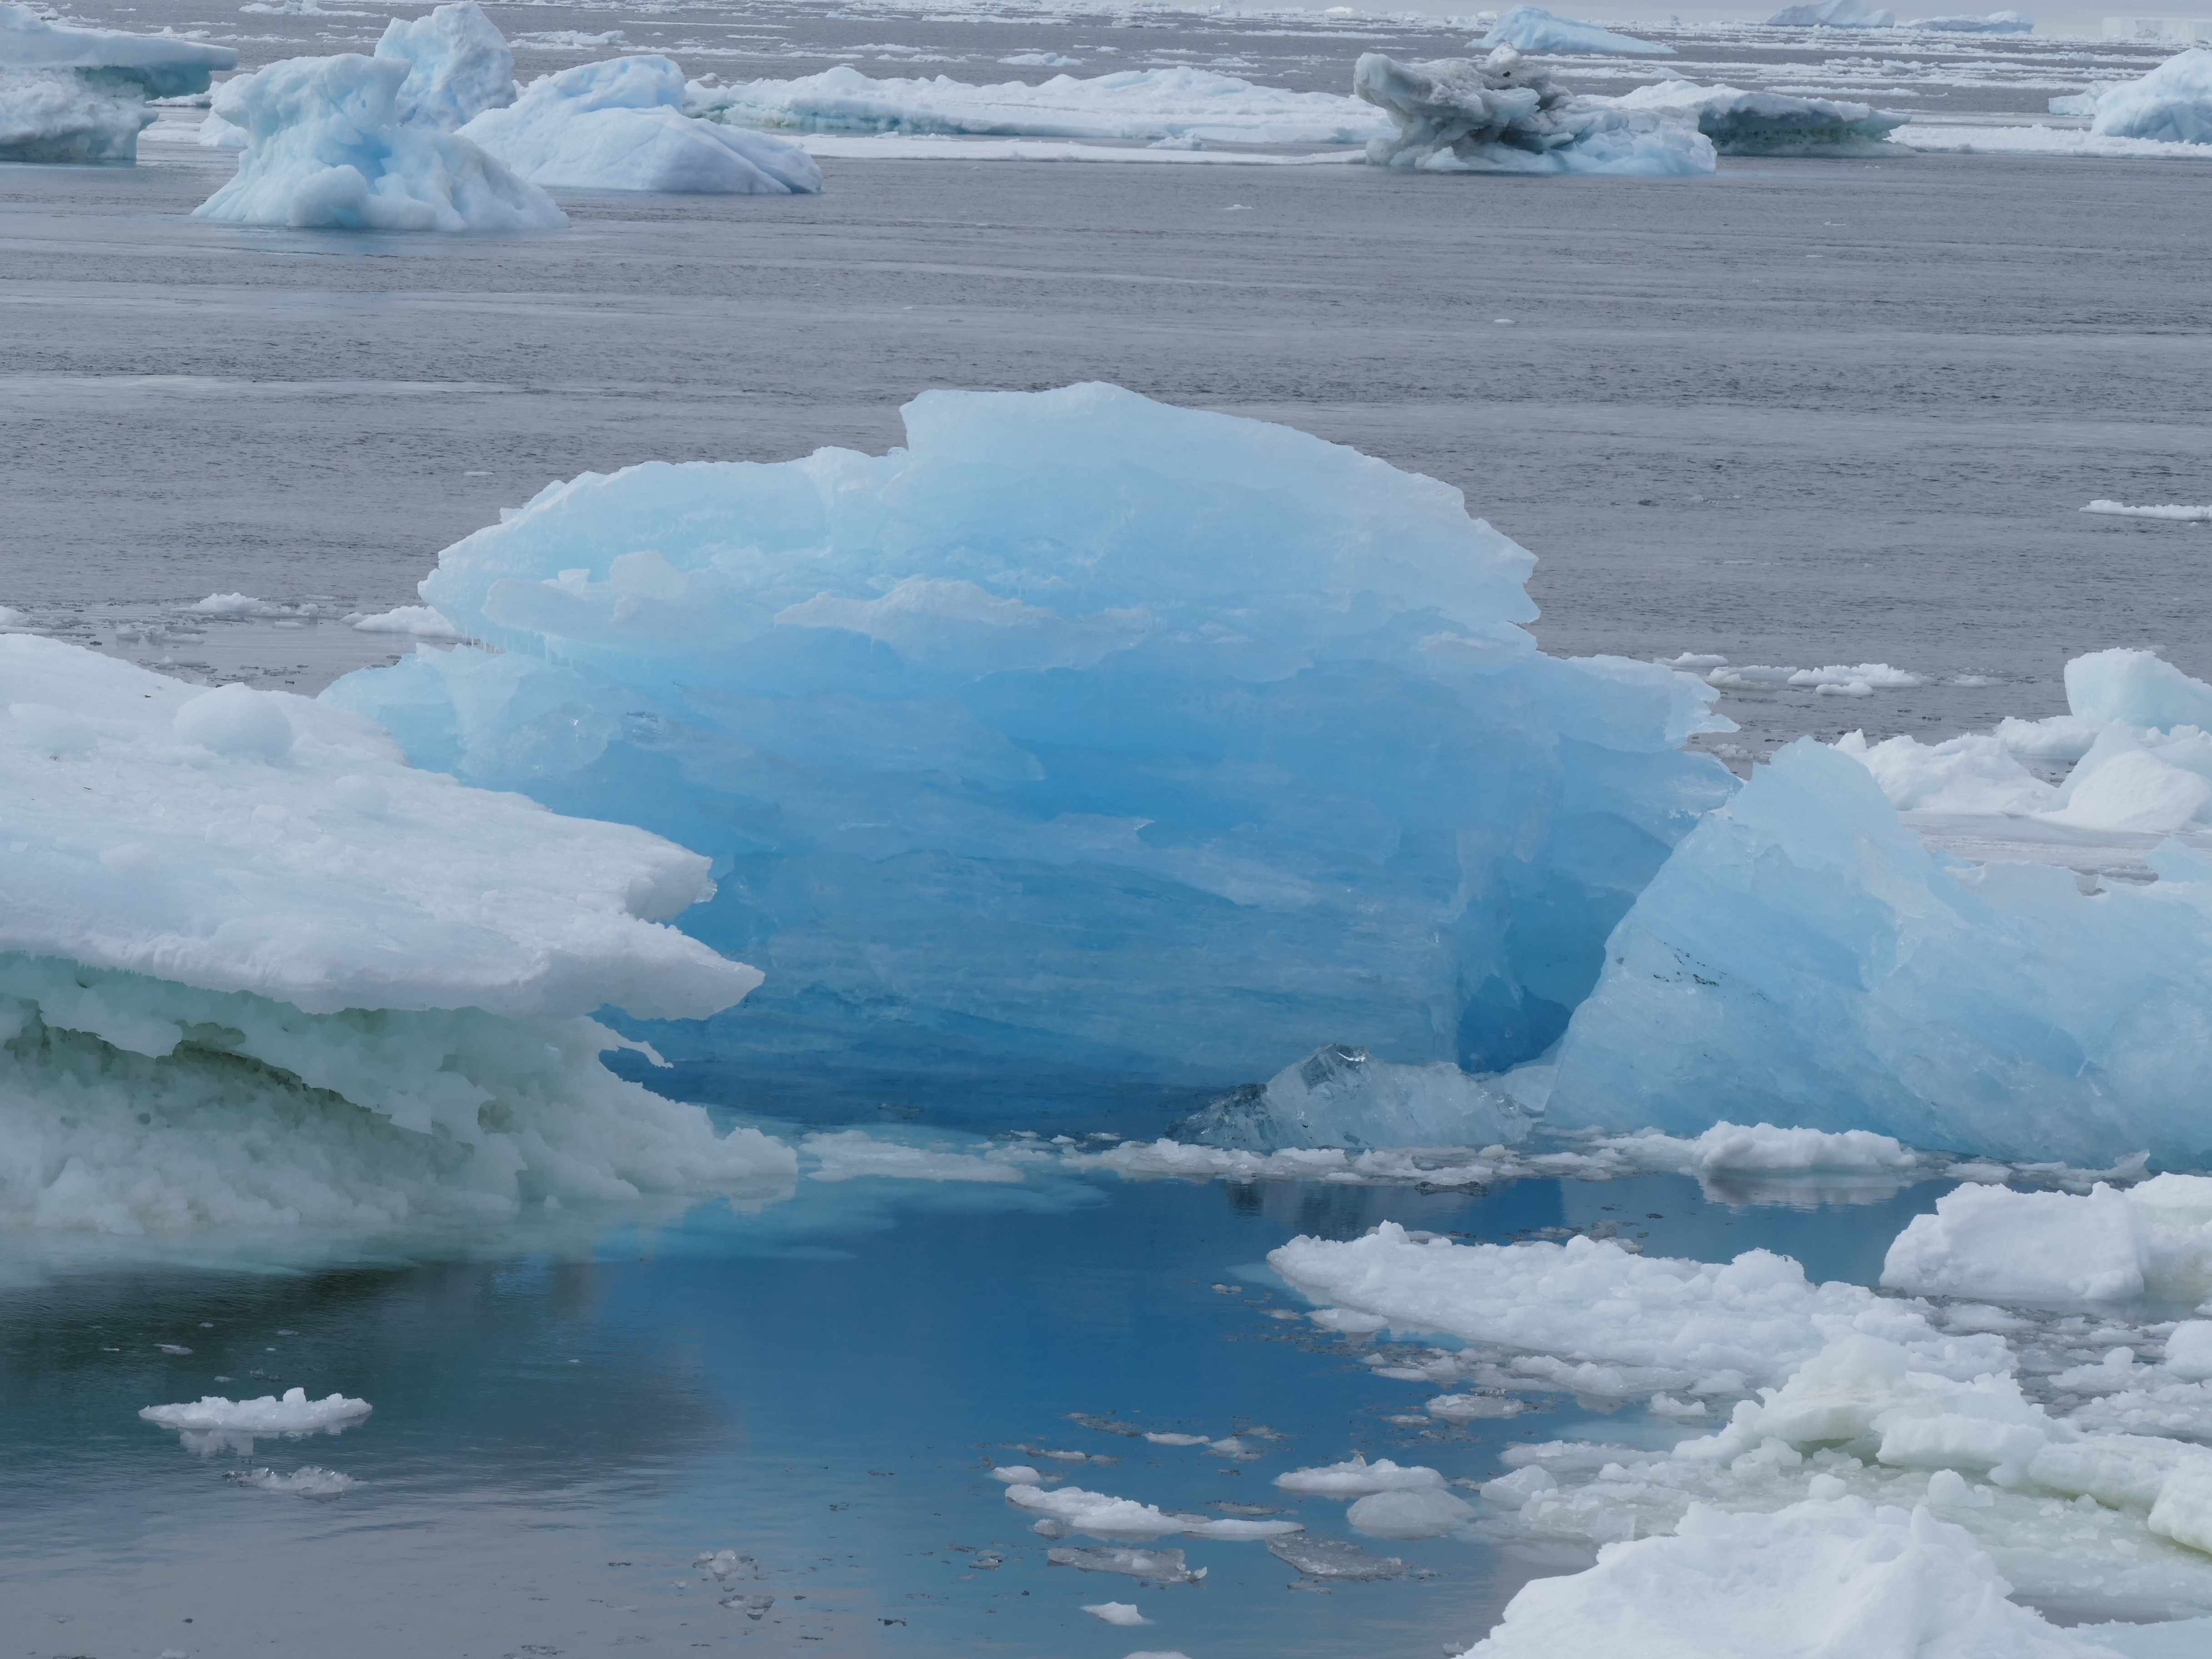 Icebergs melting in the Weddell Sea